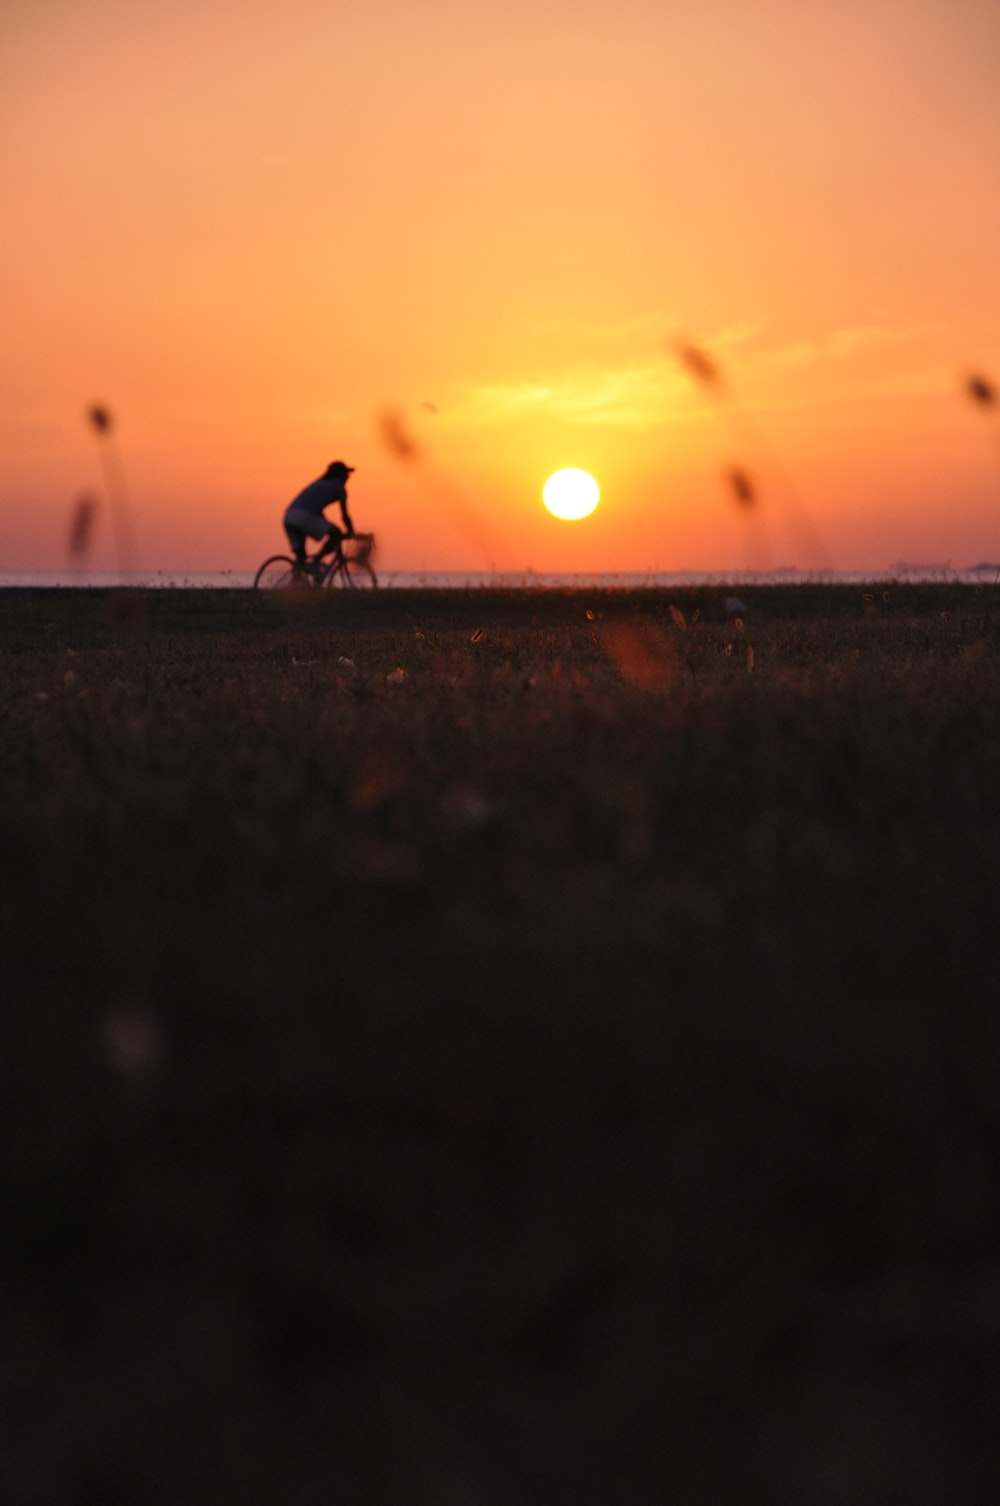 person driving bike during sunset